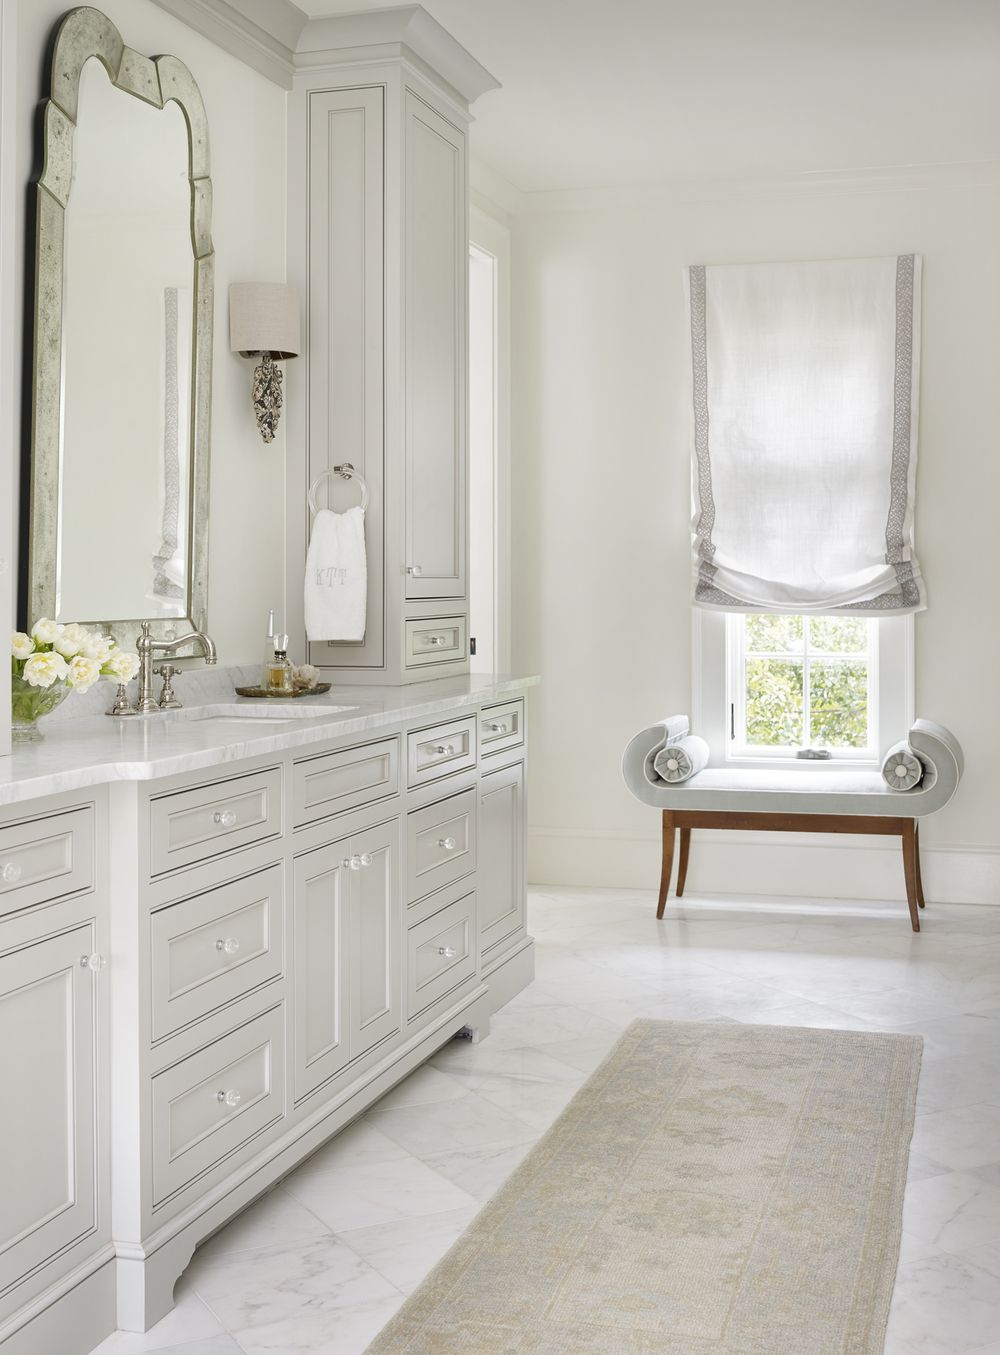 Pale Gray Bathroom Vanity Love The Soft Roman Shade and Little